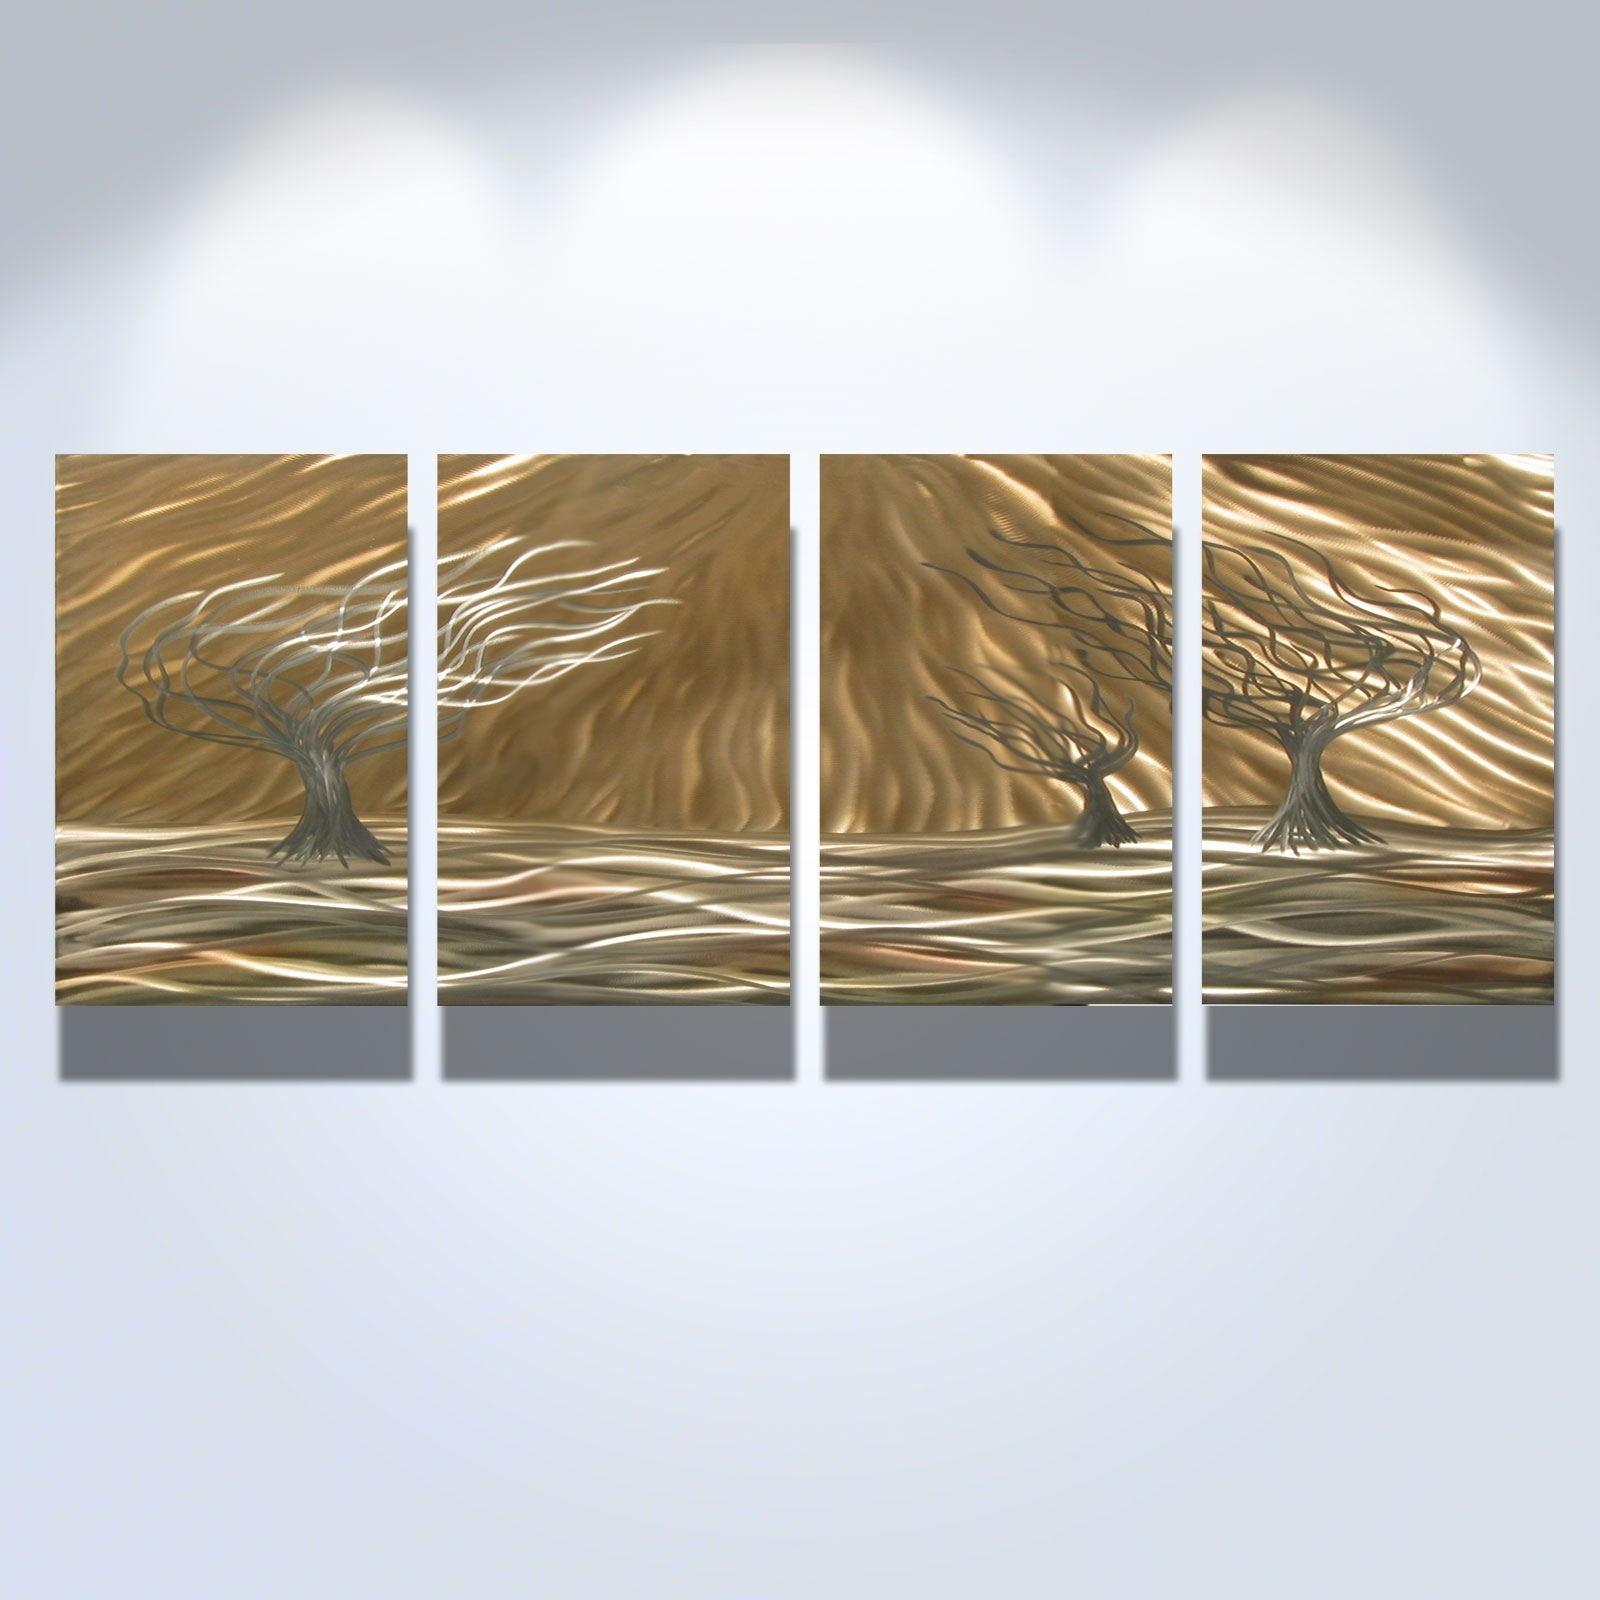 3 Trees 4 Panel – Abstract Metal Wall Art Contemporary Modern Inside Current Contemporary Abstract Wall Art (Gallery 13 of 20)